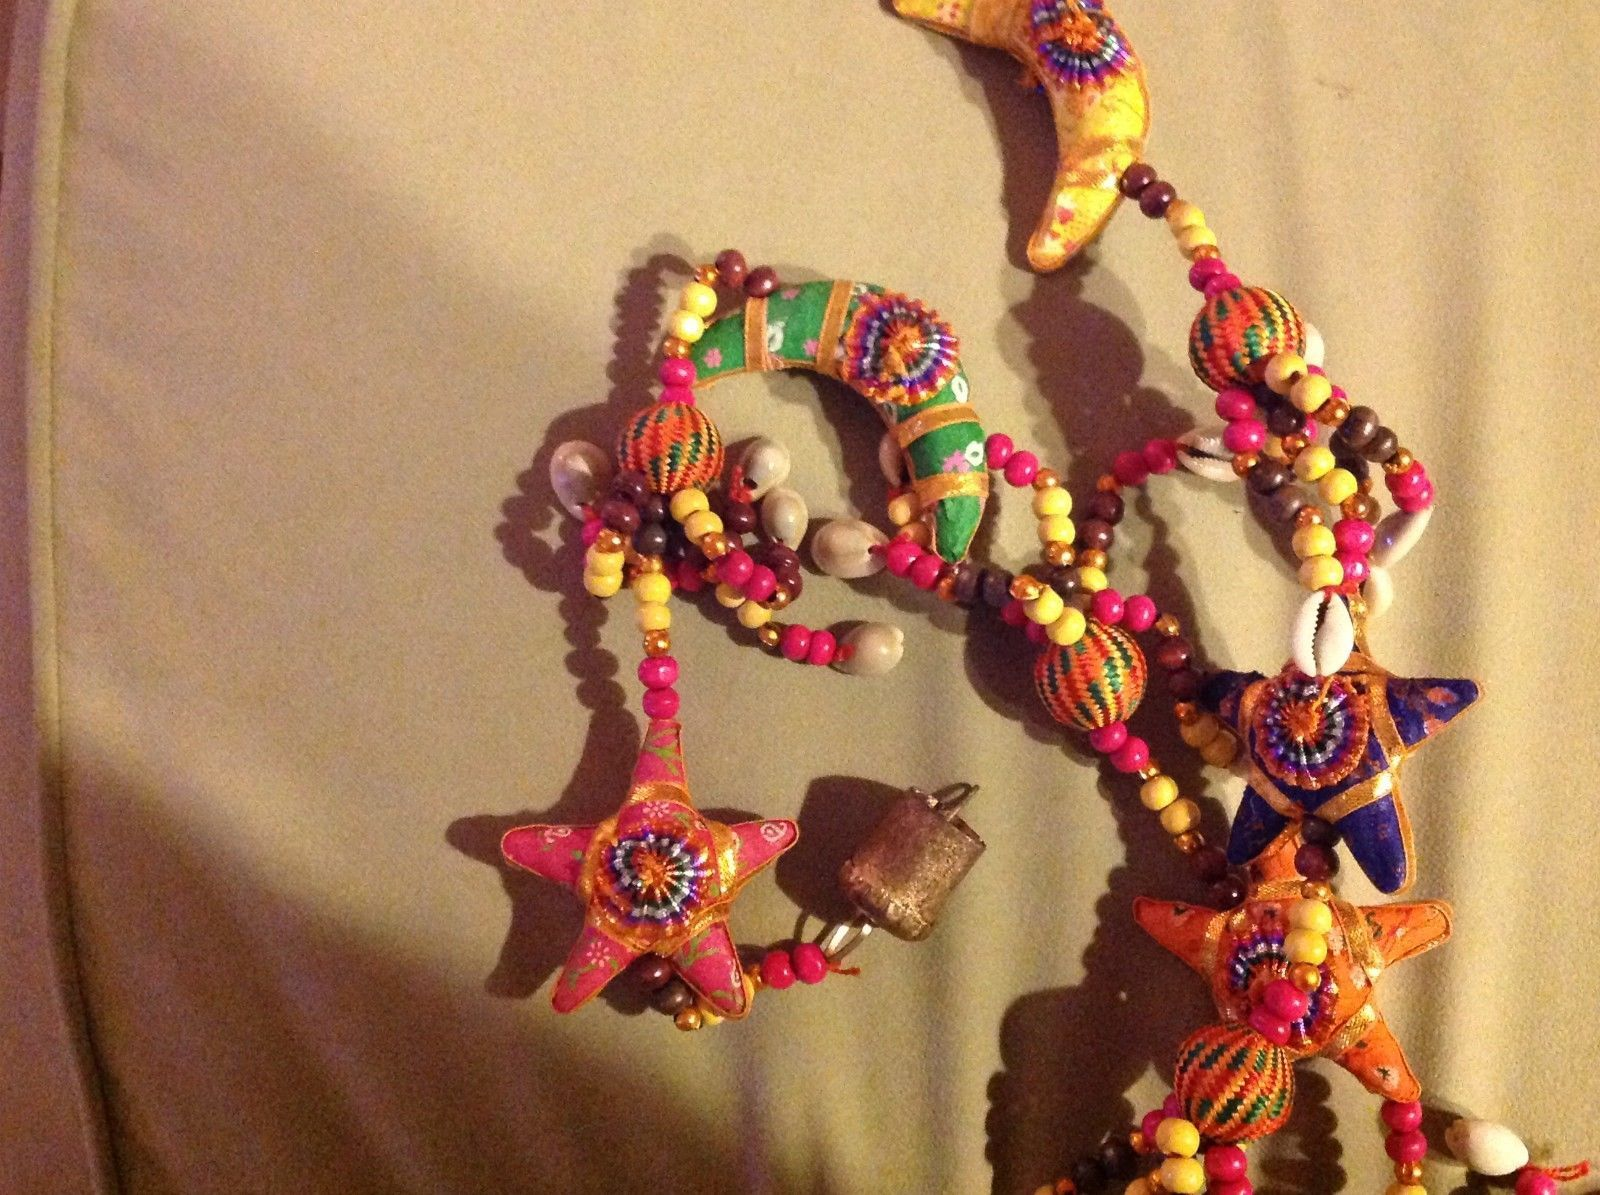 Large Festival Crescent Moon Stars Strand w Beads and Bell String Connector image 4